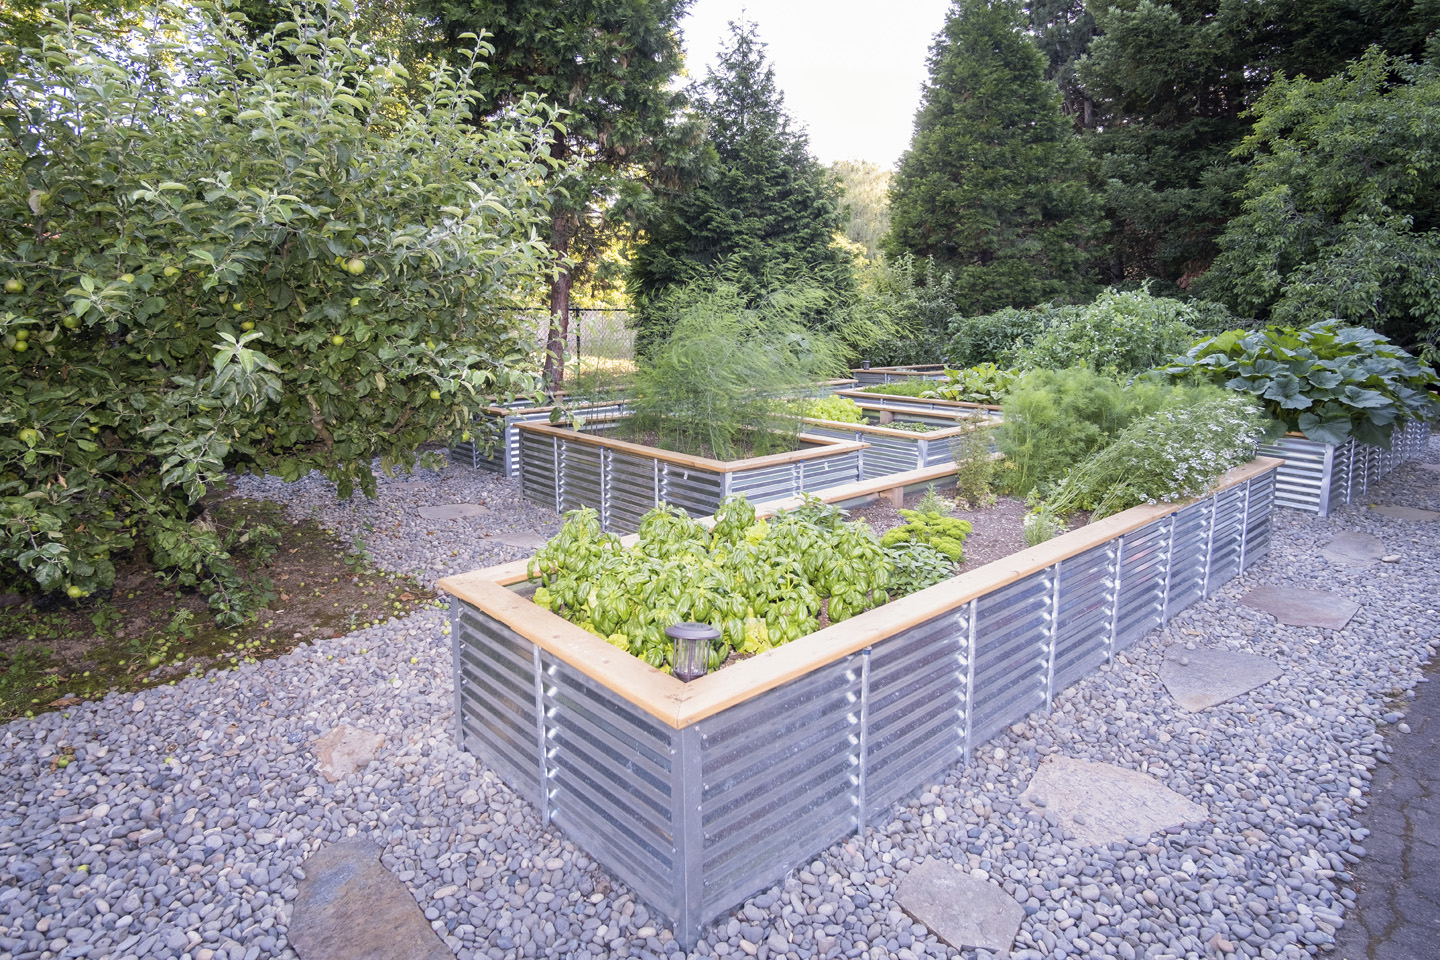 Planter Box Plantings - Raised Beds